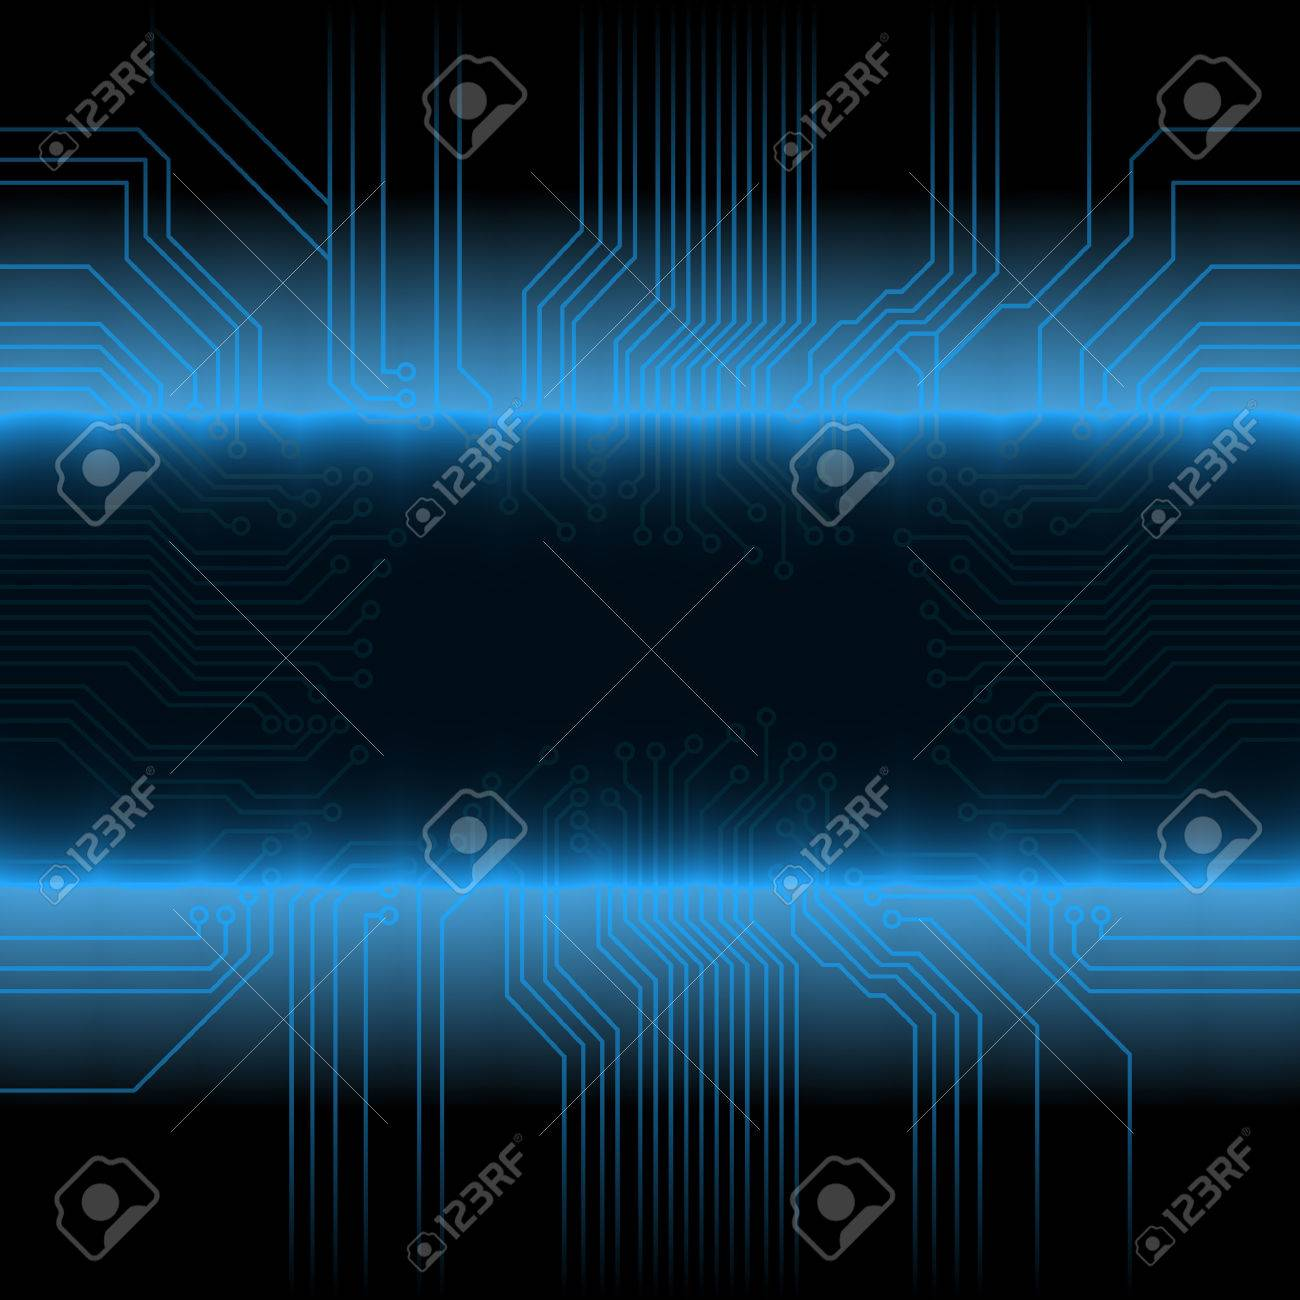 Vector Illustration Of A Glowing Circuitry Board Design With ...